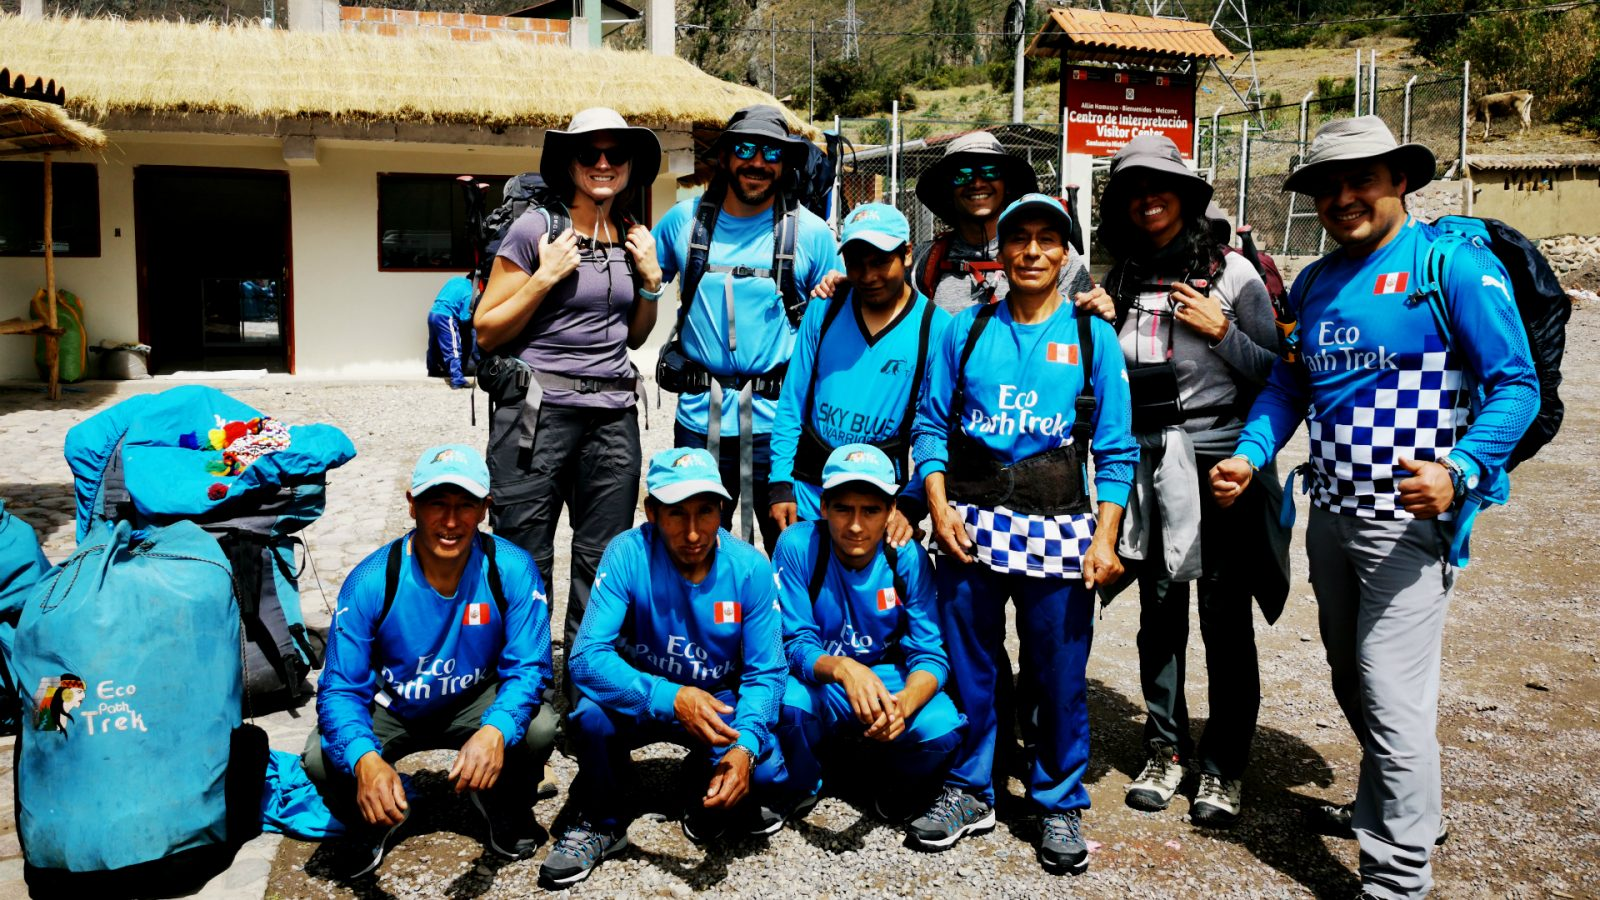 inka trail trek staff